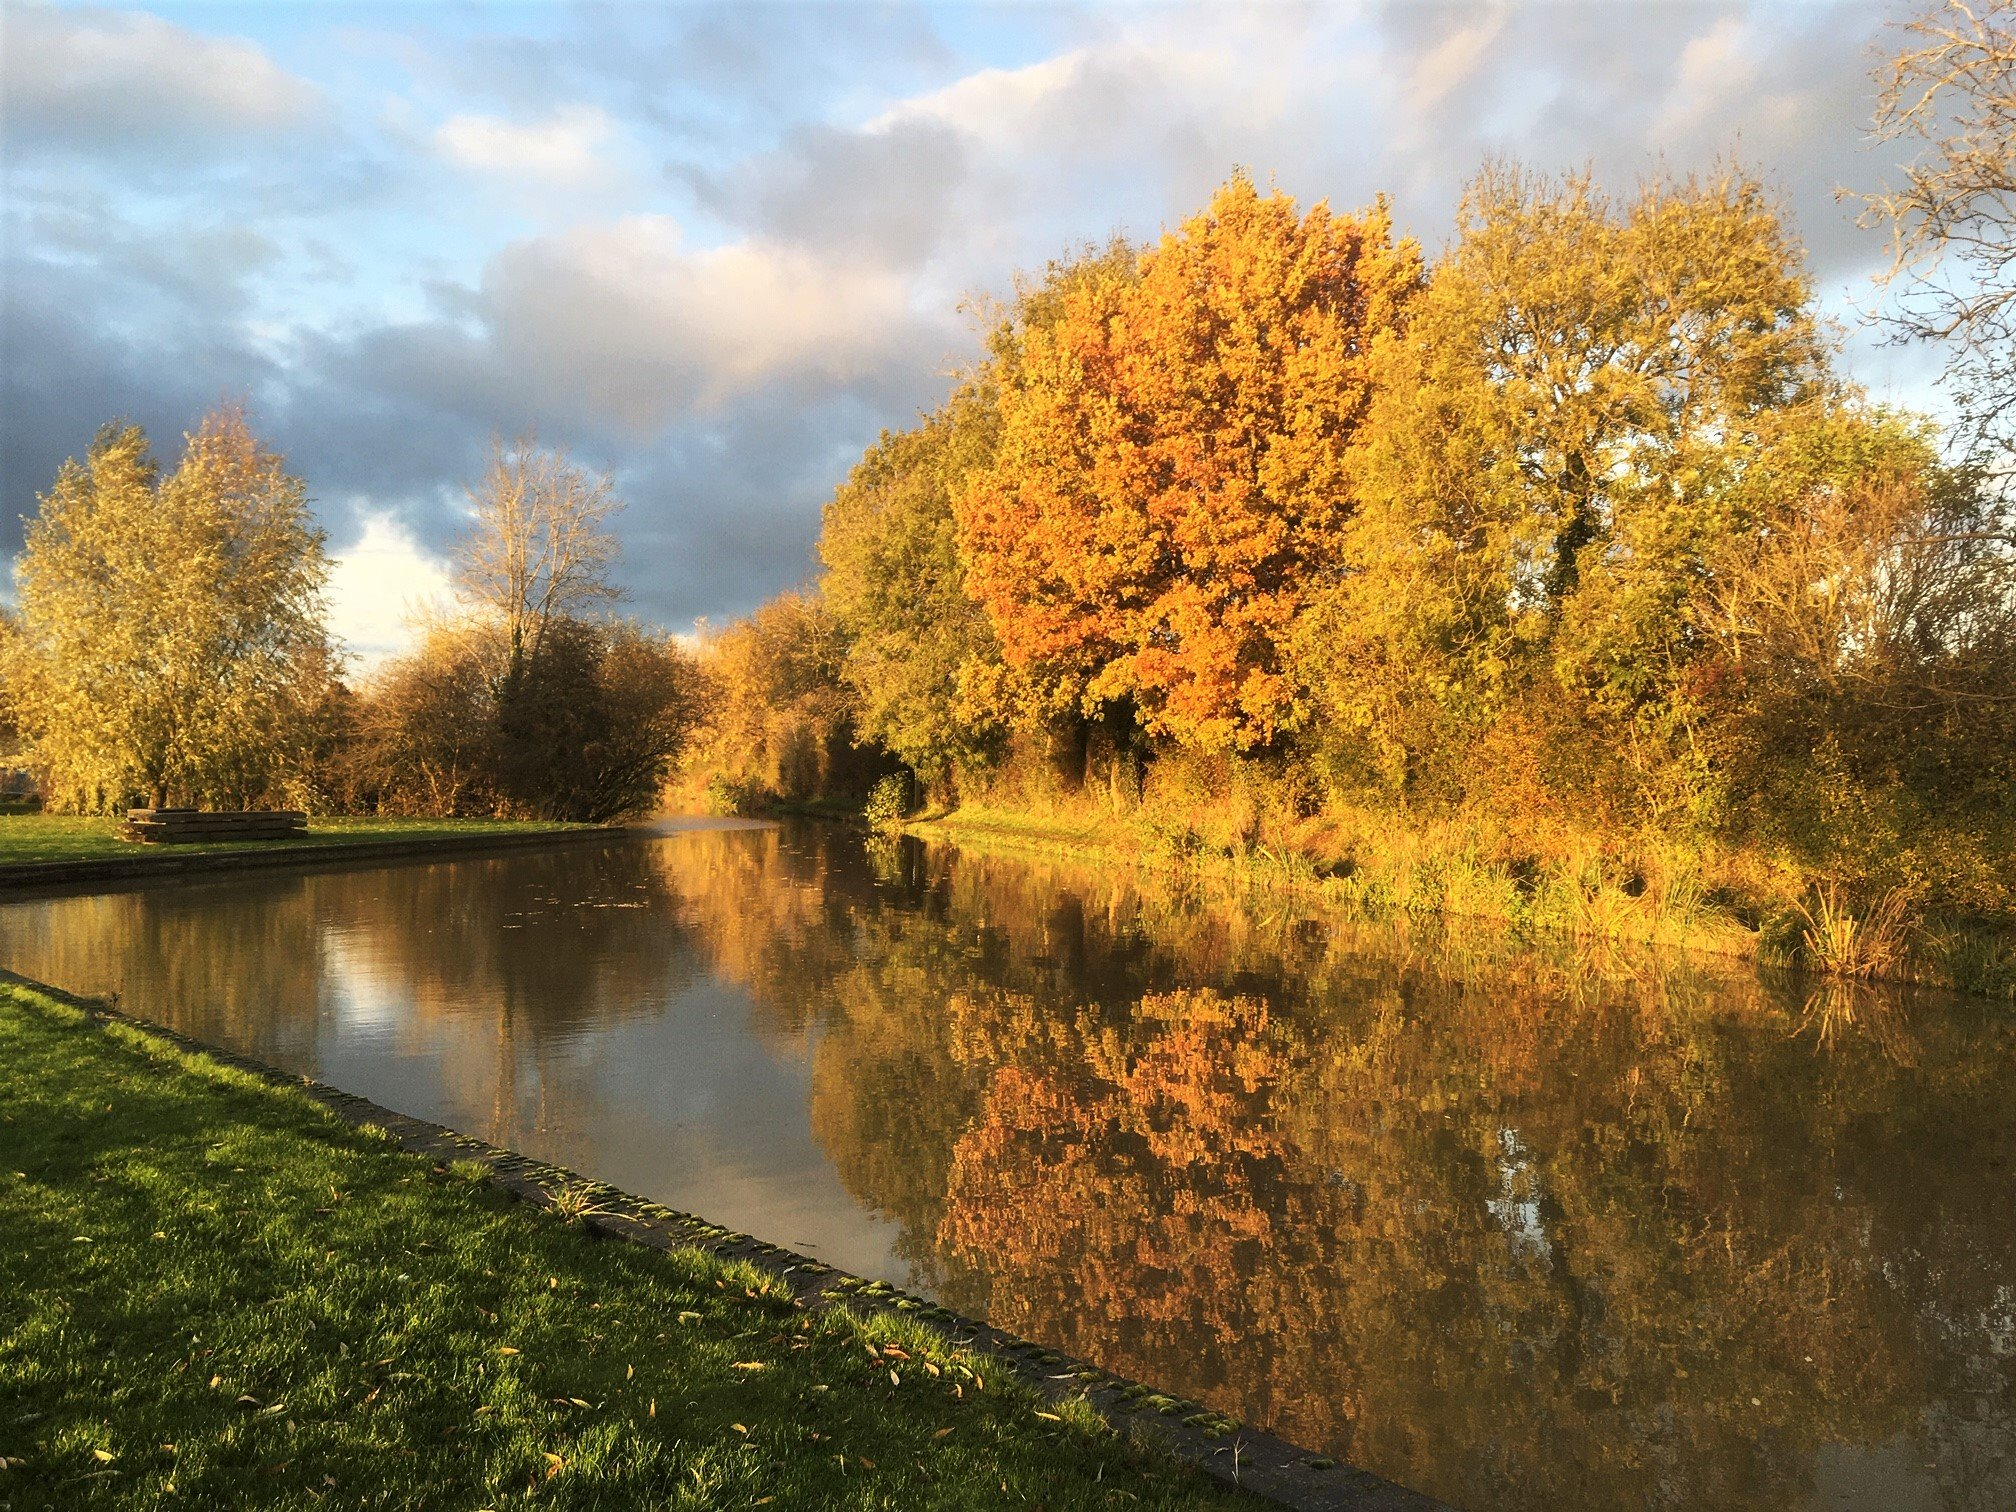 Autumn glory in the golden hour on the Oxford Canal today🧡 #lifesbetterbywater https://t.co/B3XmMjrlYc